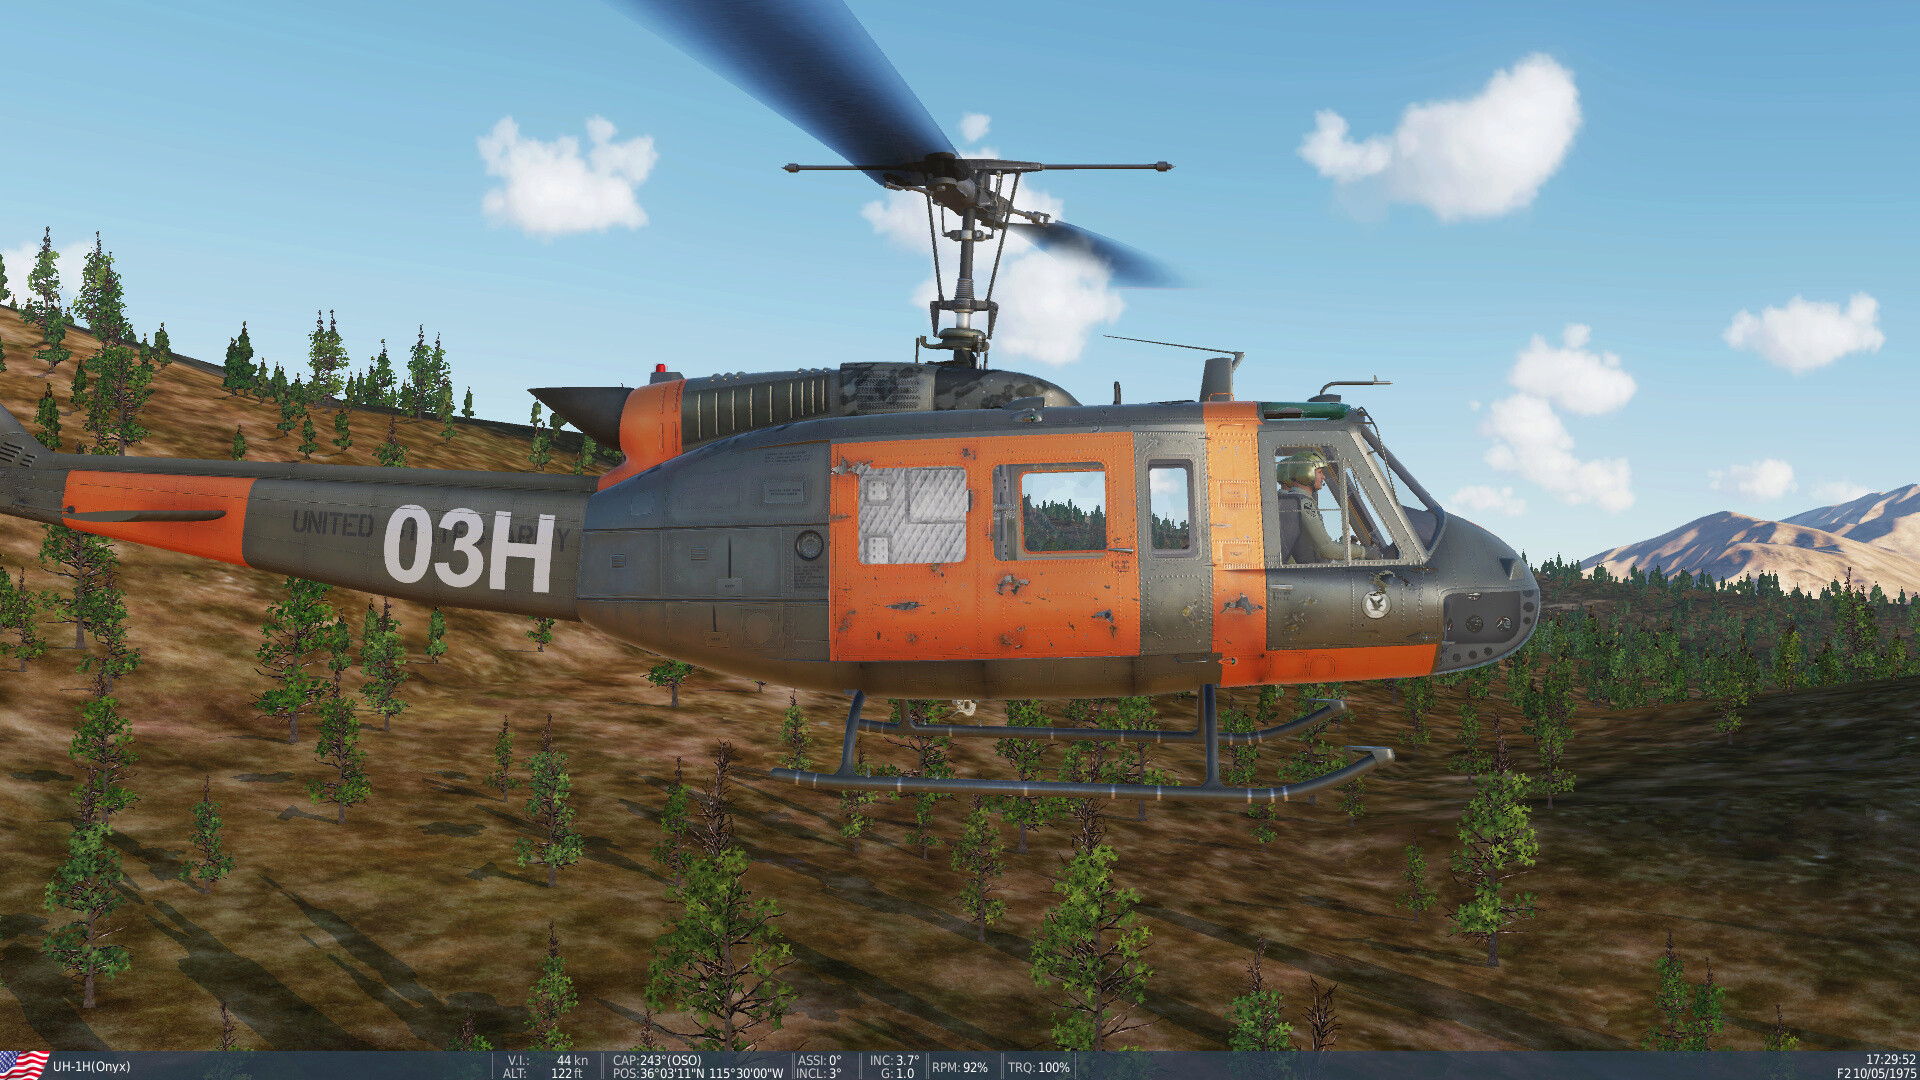 [Cursus UH-1H Huey] Photos de nos missions Scree180